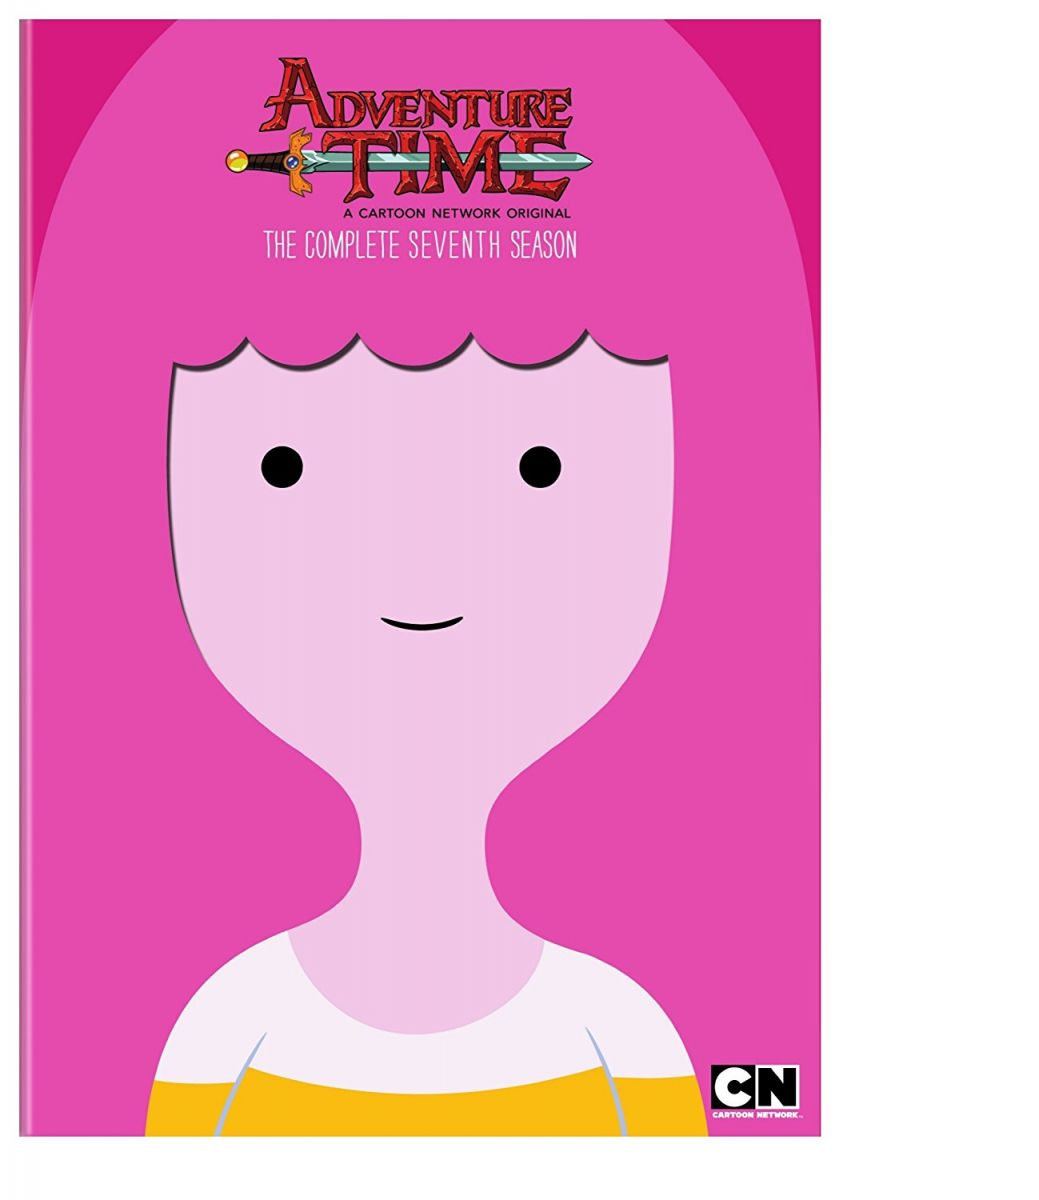 TVRaven - Adventure Time season 7 (S07) full episodes online